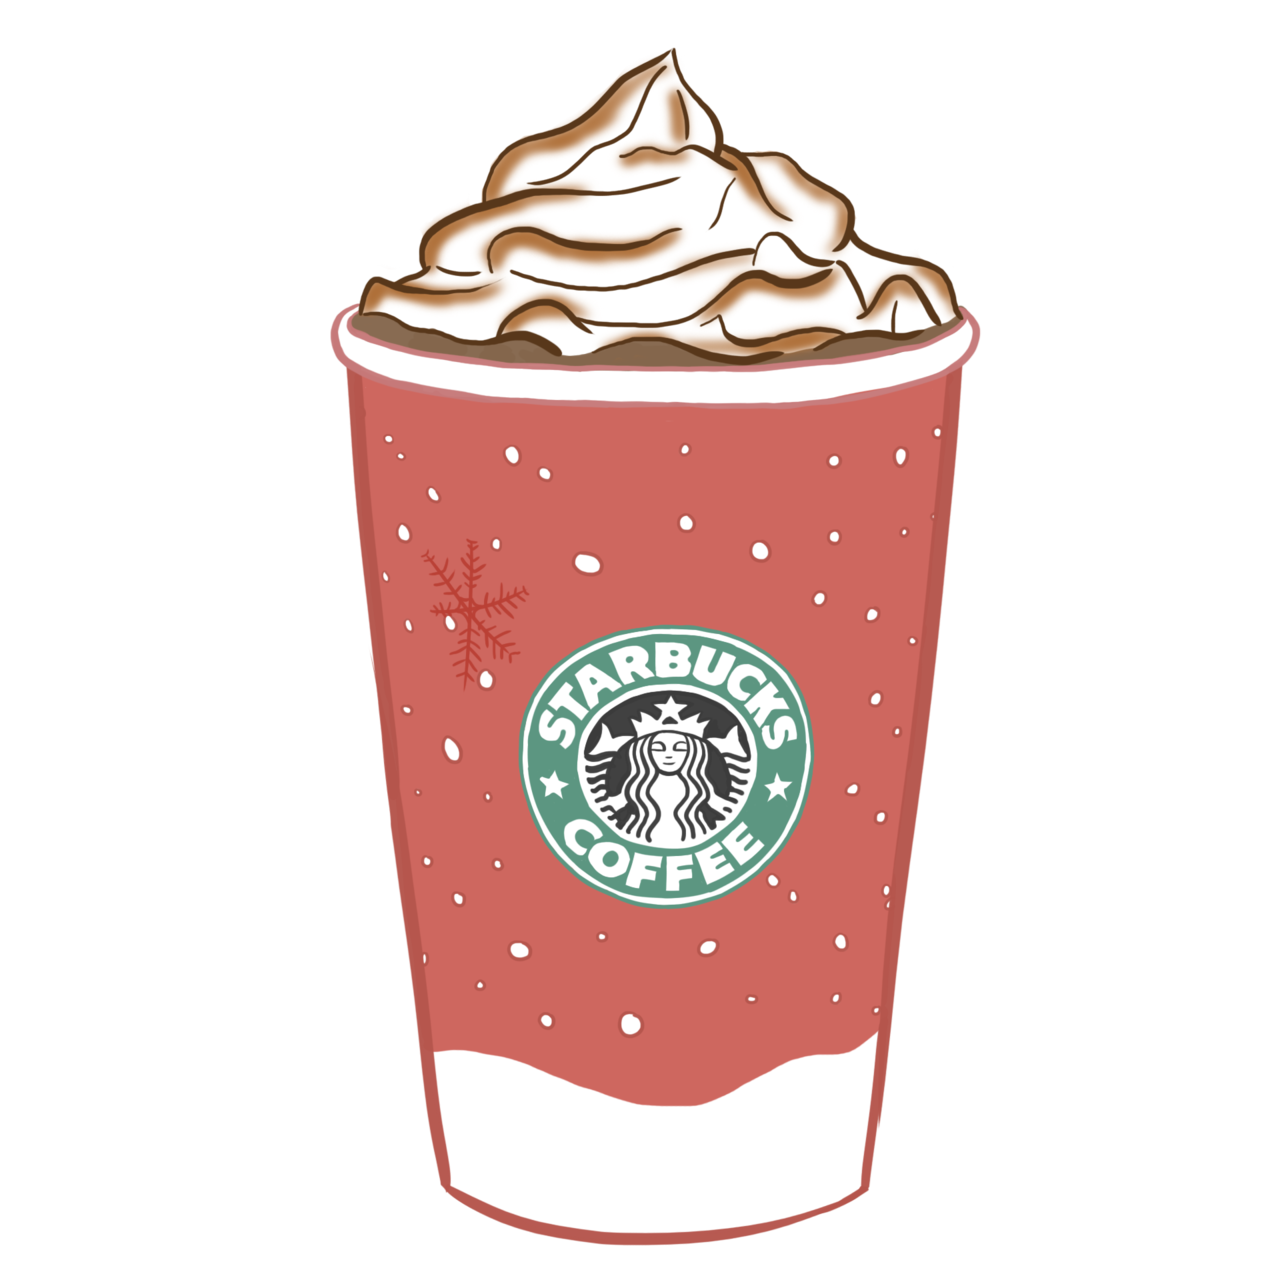 Starbucks Clipart | Free download best Starbucks Clipart on ...